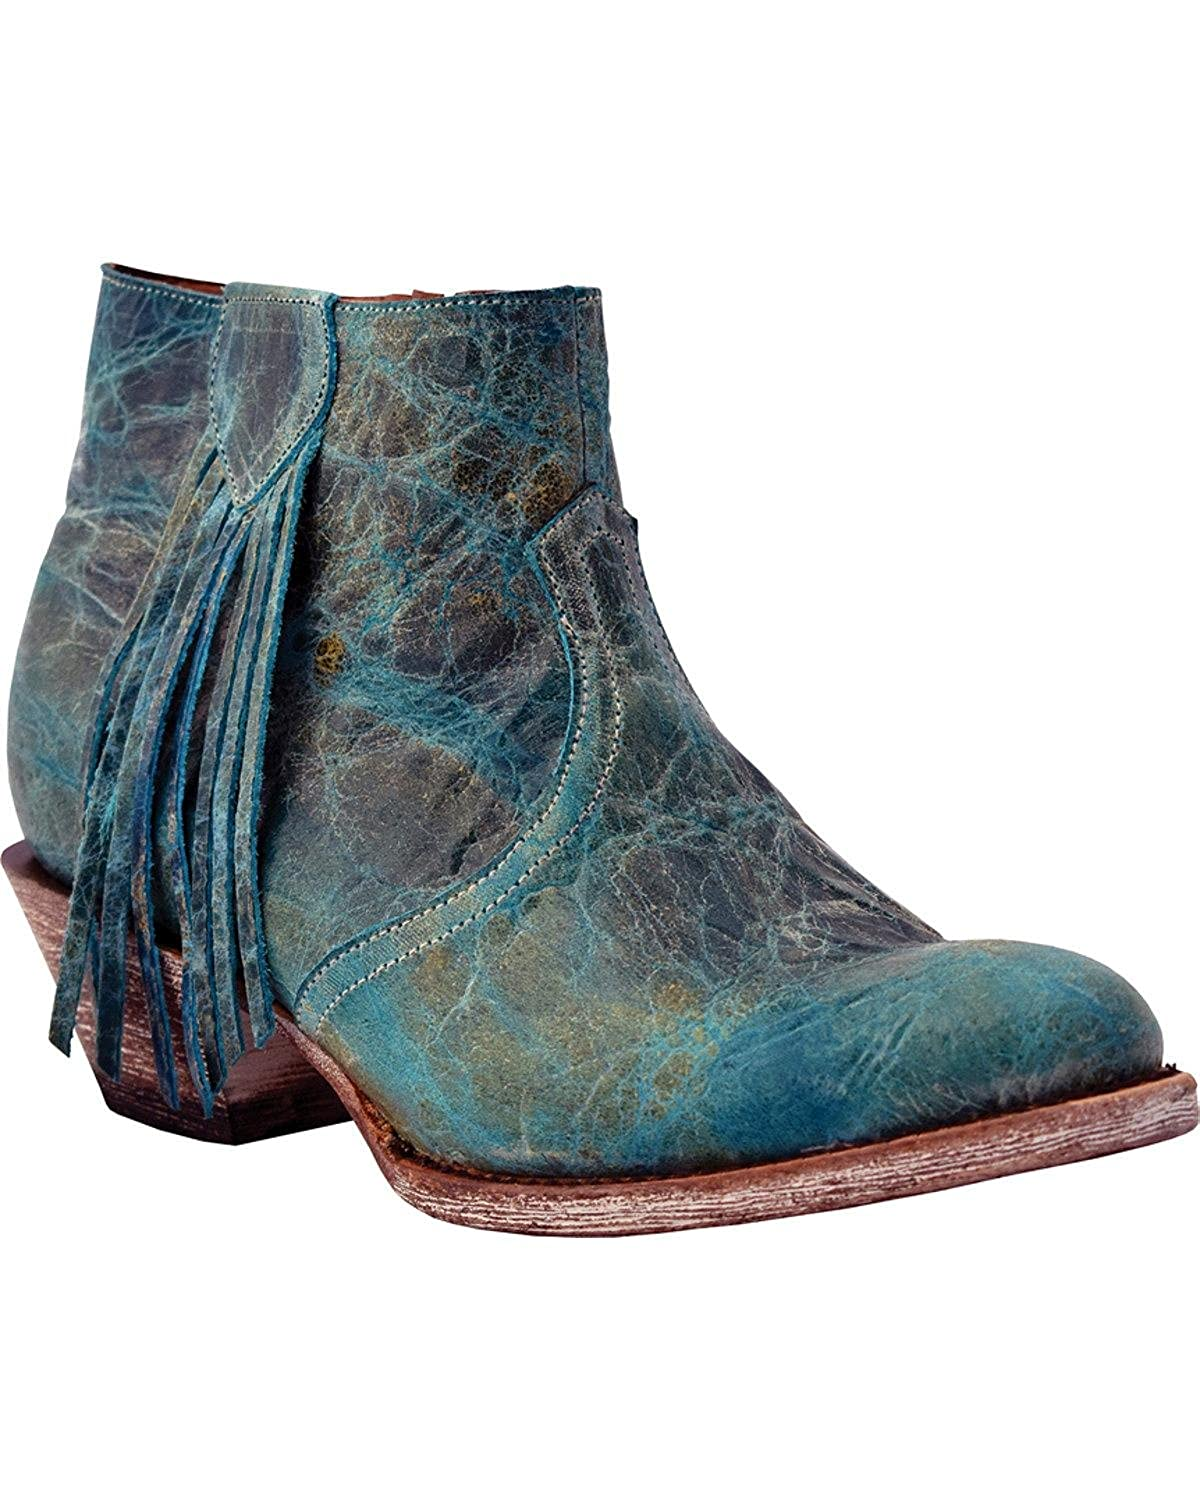 2619297d3 Ferrini Women s Fringe Bootie Ankle Boot Leather Cowboy Cowgirl ...